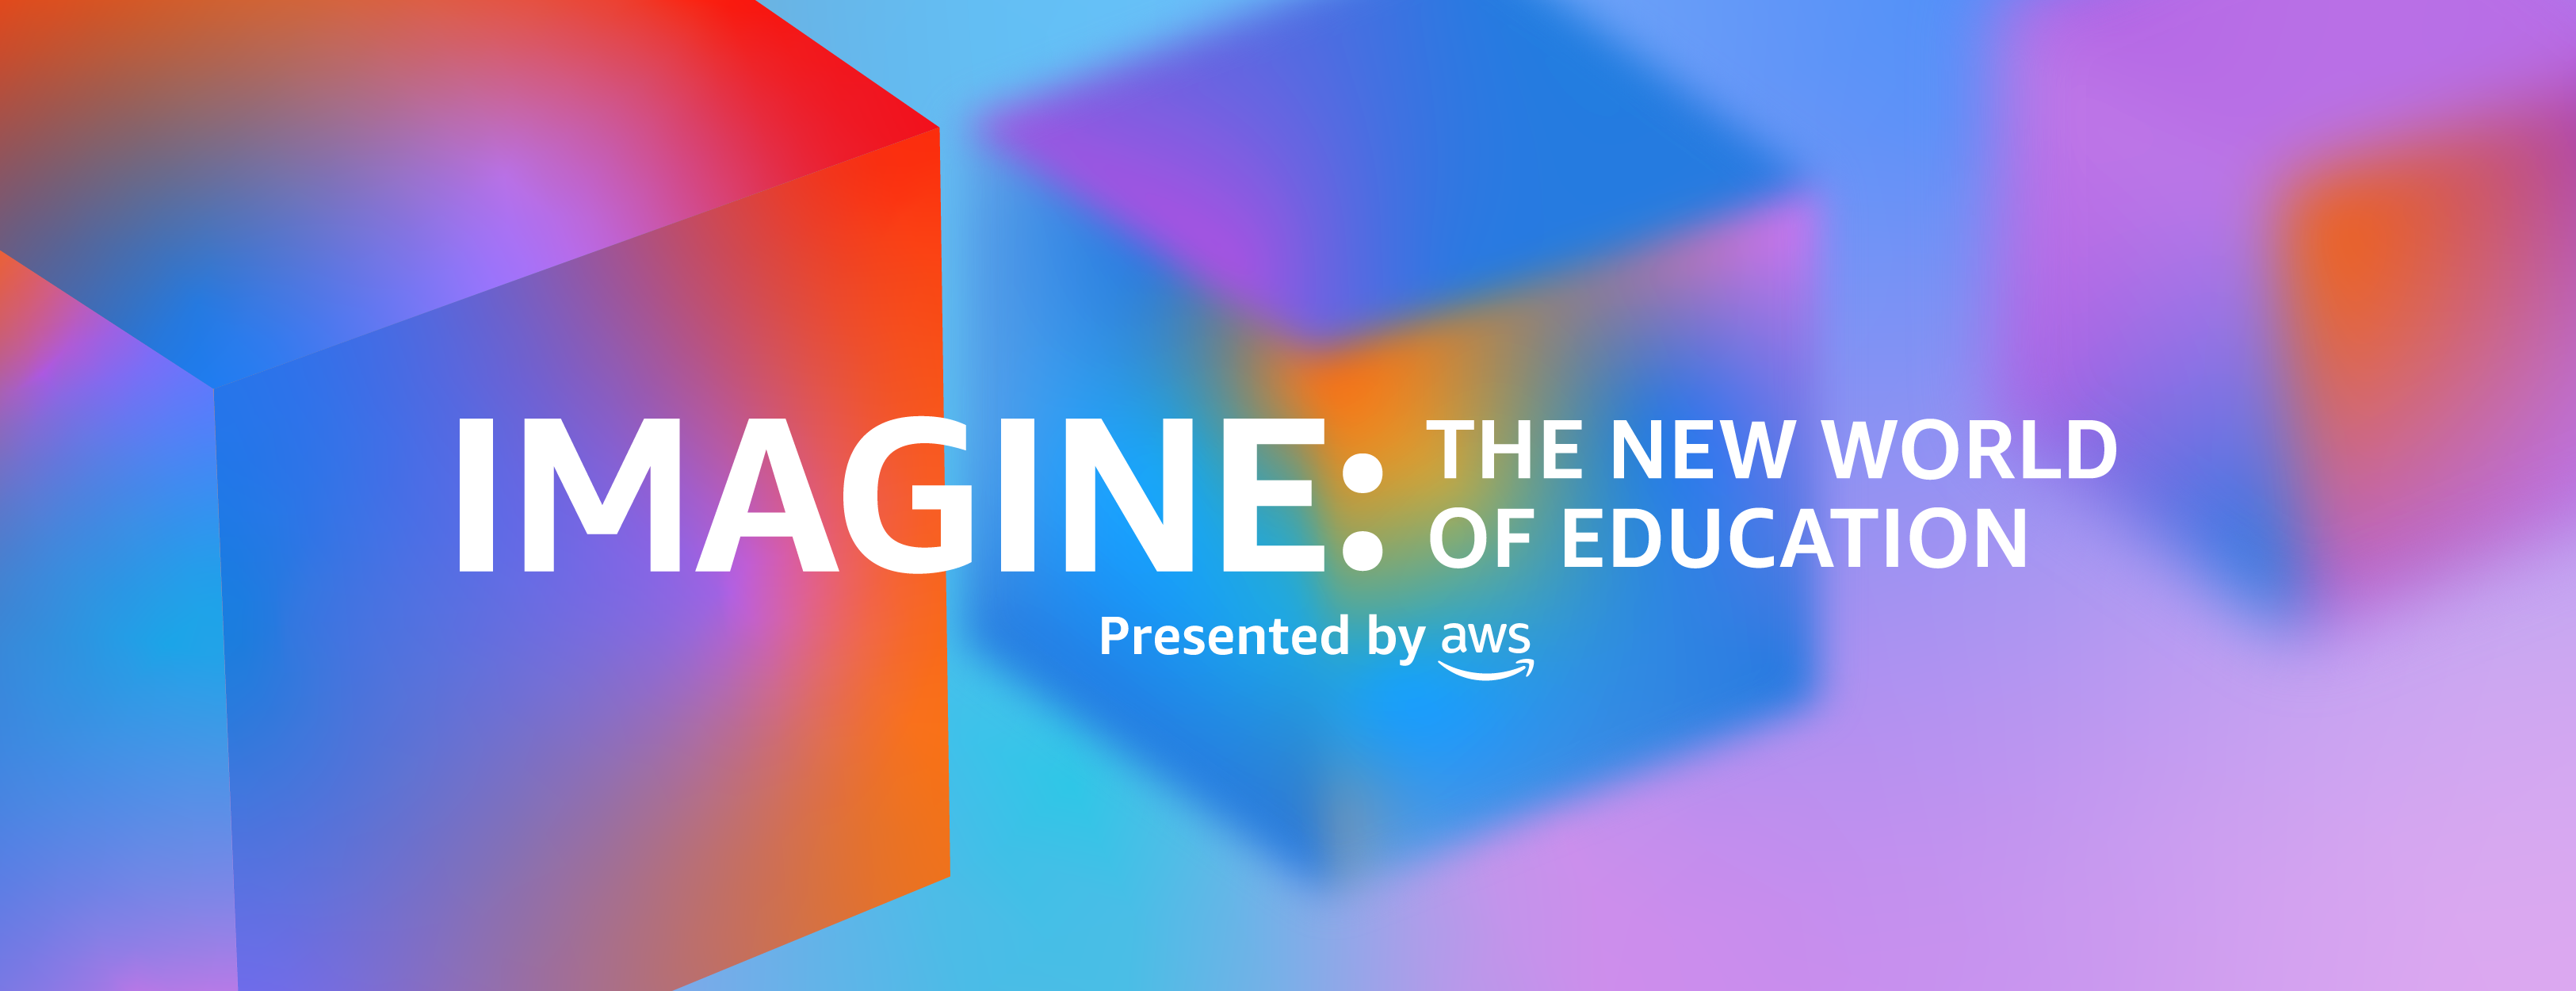 AWS_Imagine_Edu_Event_Banner_780x300(1)